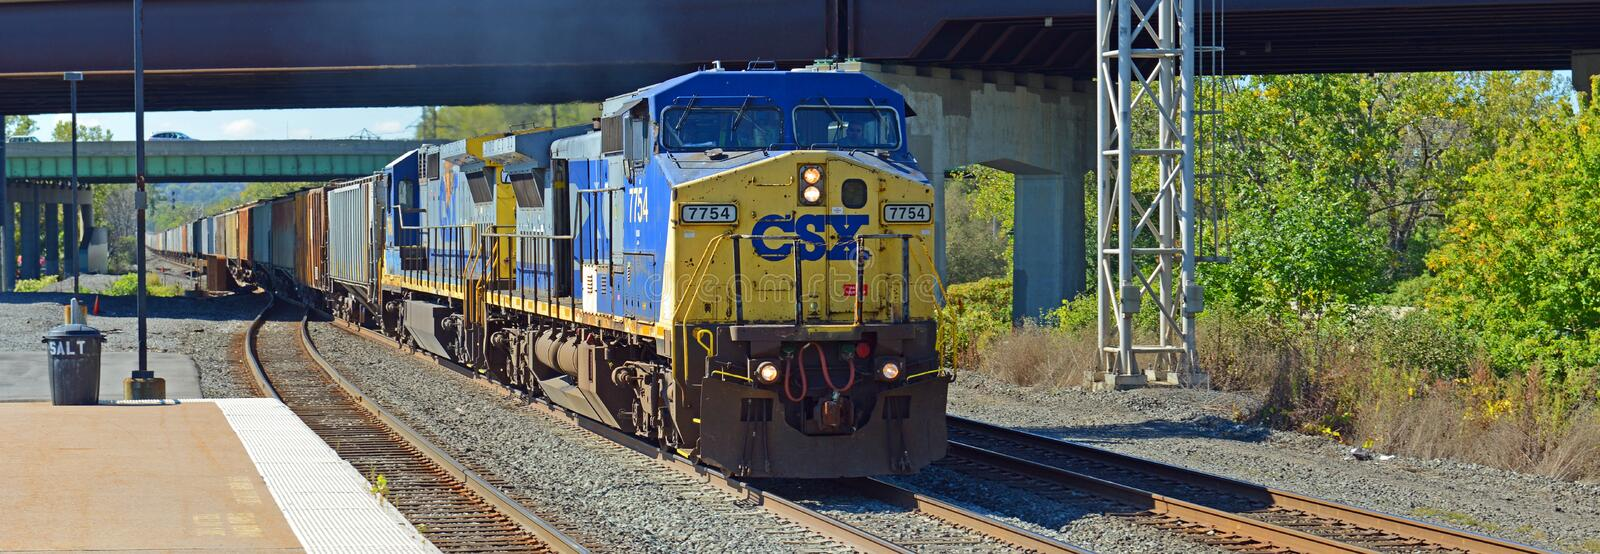 CSX Diesel Locomotive, Syracuse, New York, USA royalty free stock photo